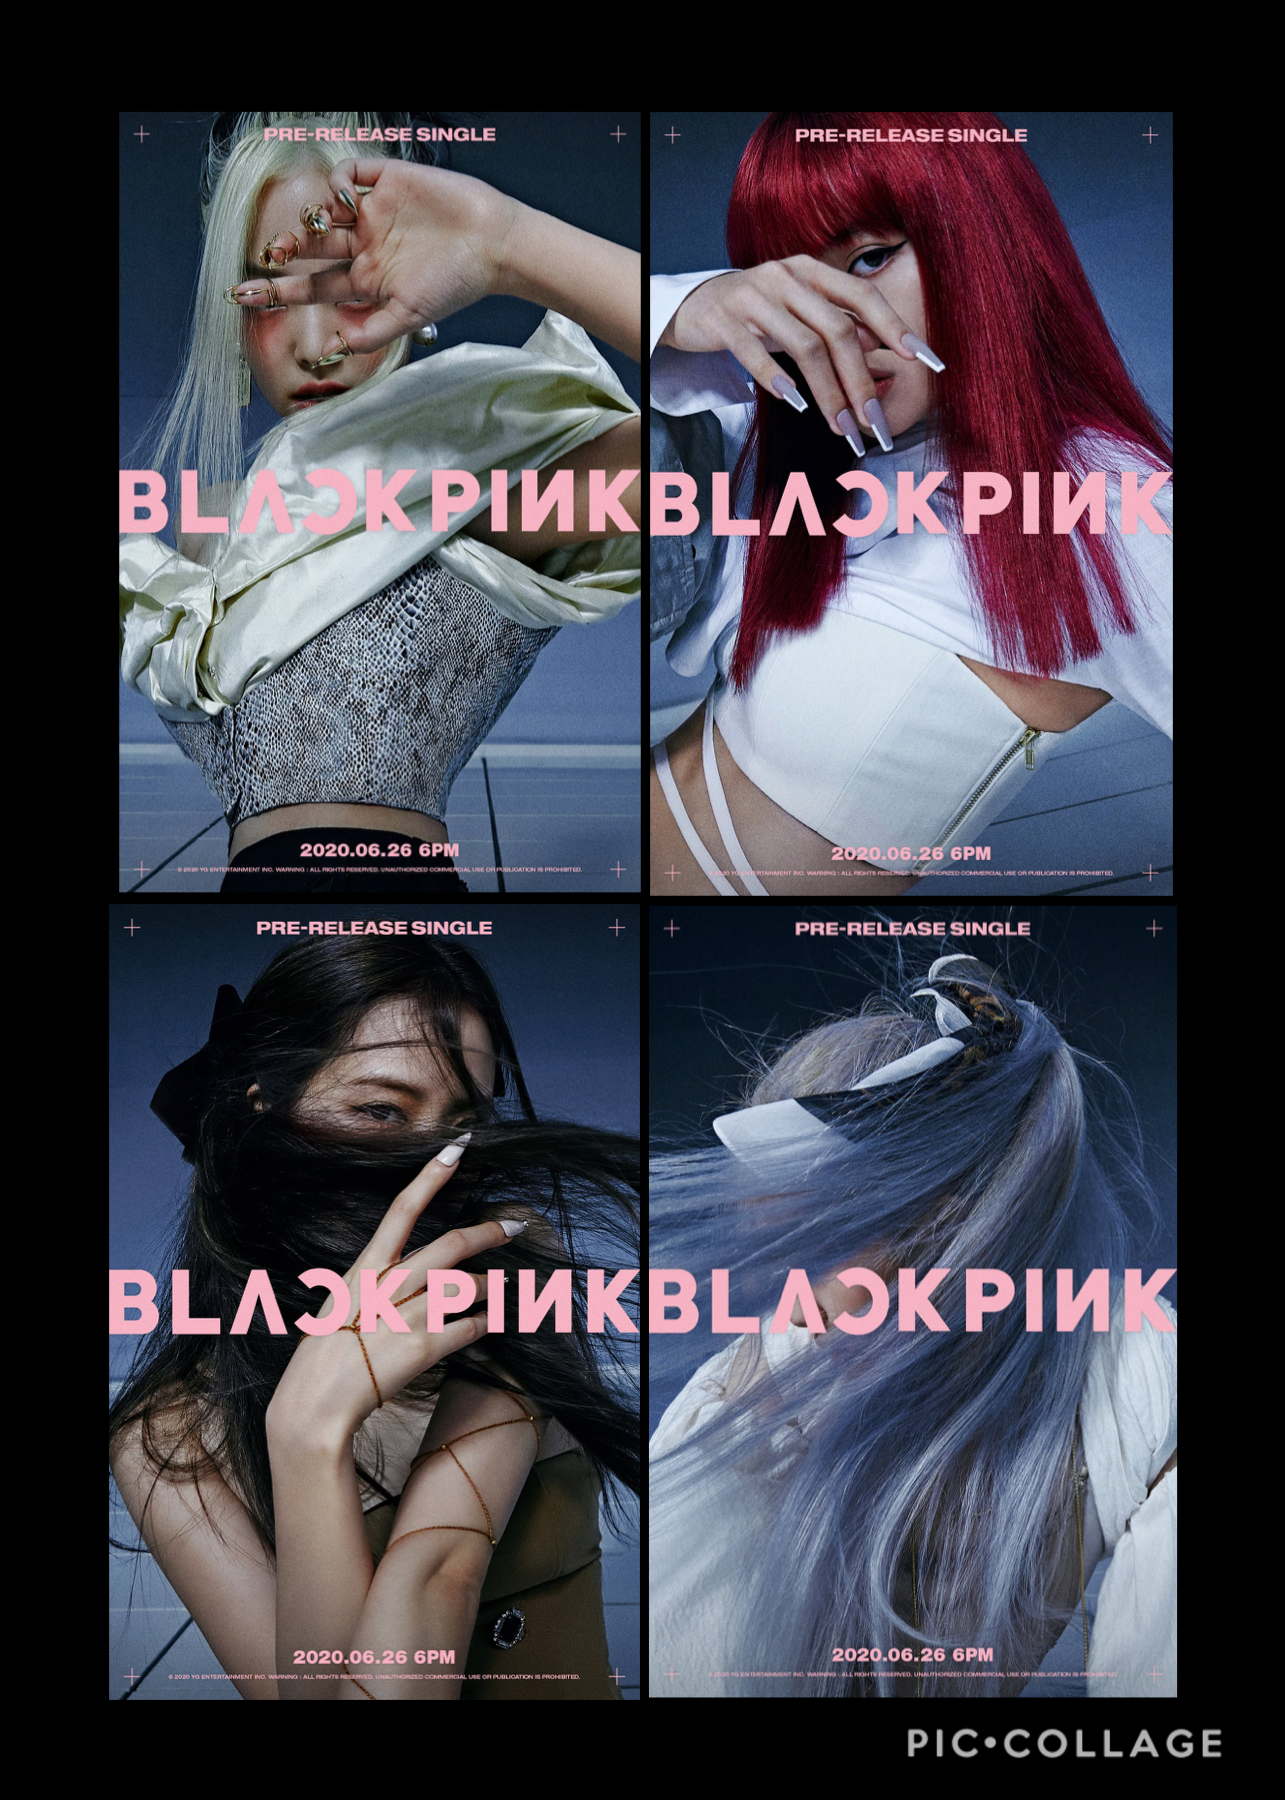 ok but this comeback is high budget 🤯🤩 after this comeback, rosé, jisoo & lisa are releasing their solo albums!!! it'll be released around fall, but i'm so stoked 🥰 these teaser photos are 🤩🙌🏼 looK @ their hair 😧 — so glad rosé is blond anymore though 🌝 j